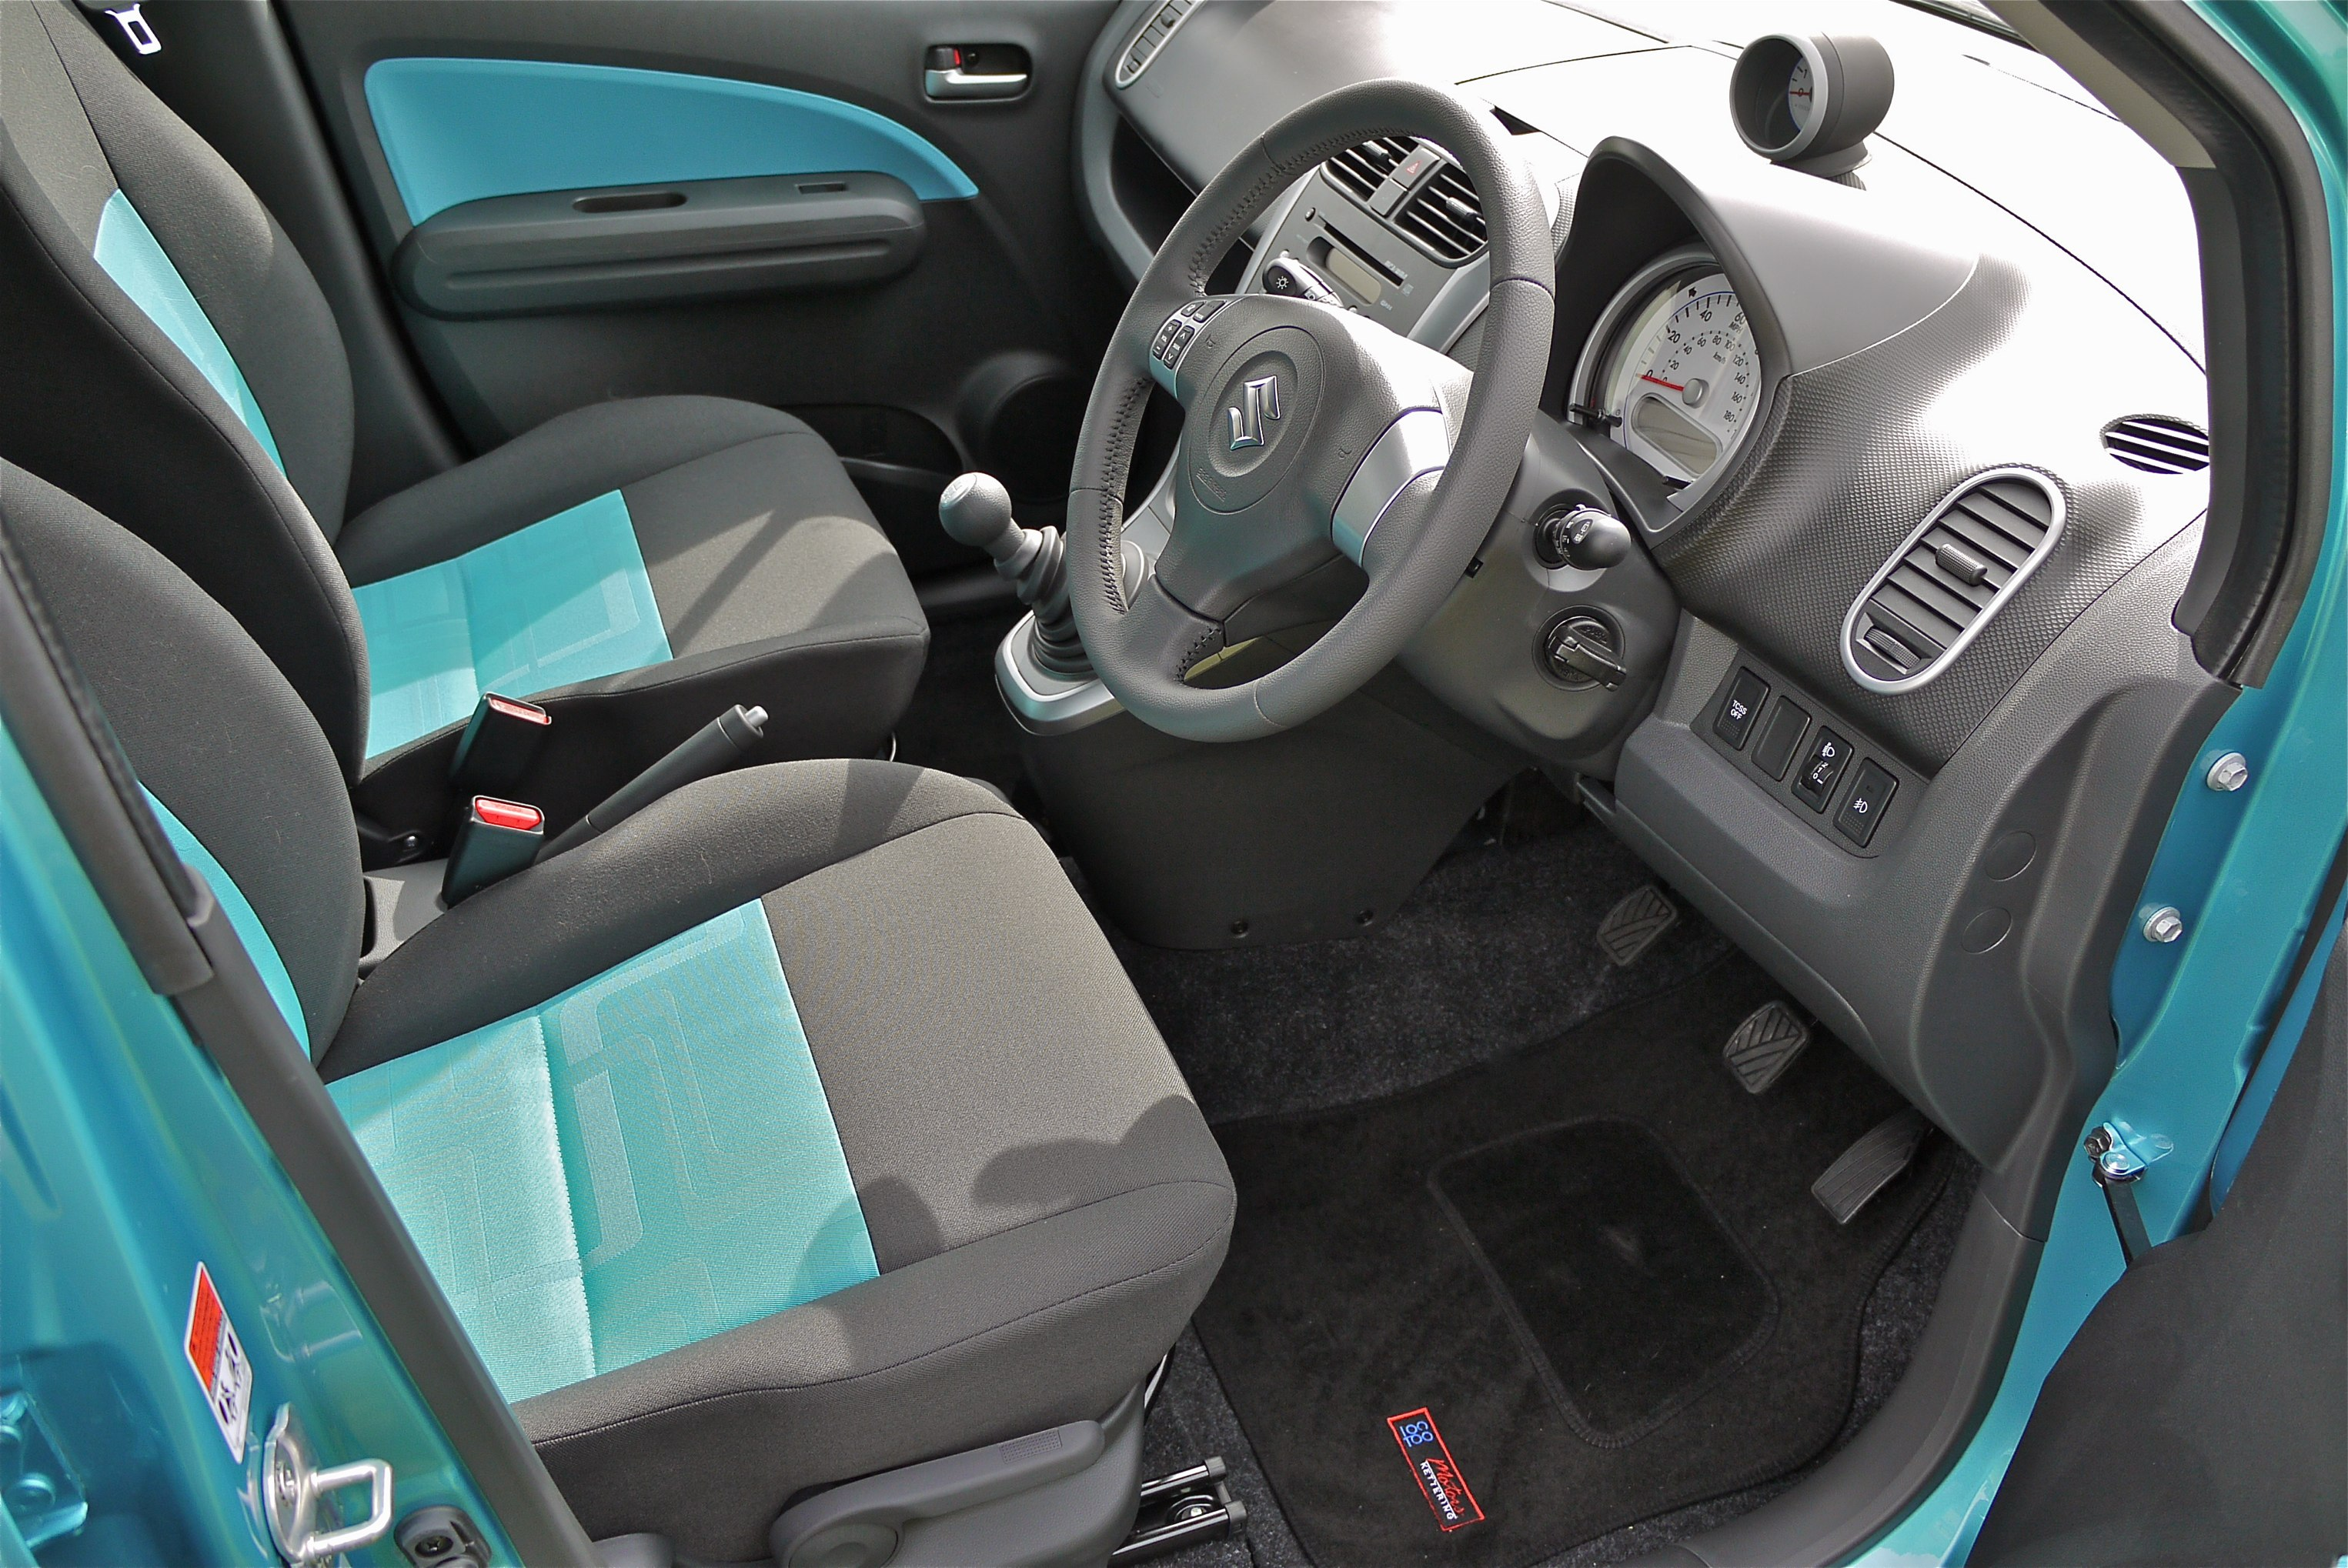 2012 Suzuki Splash Elegant Interior